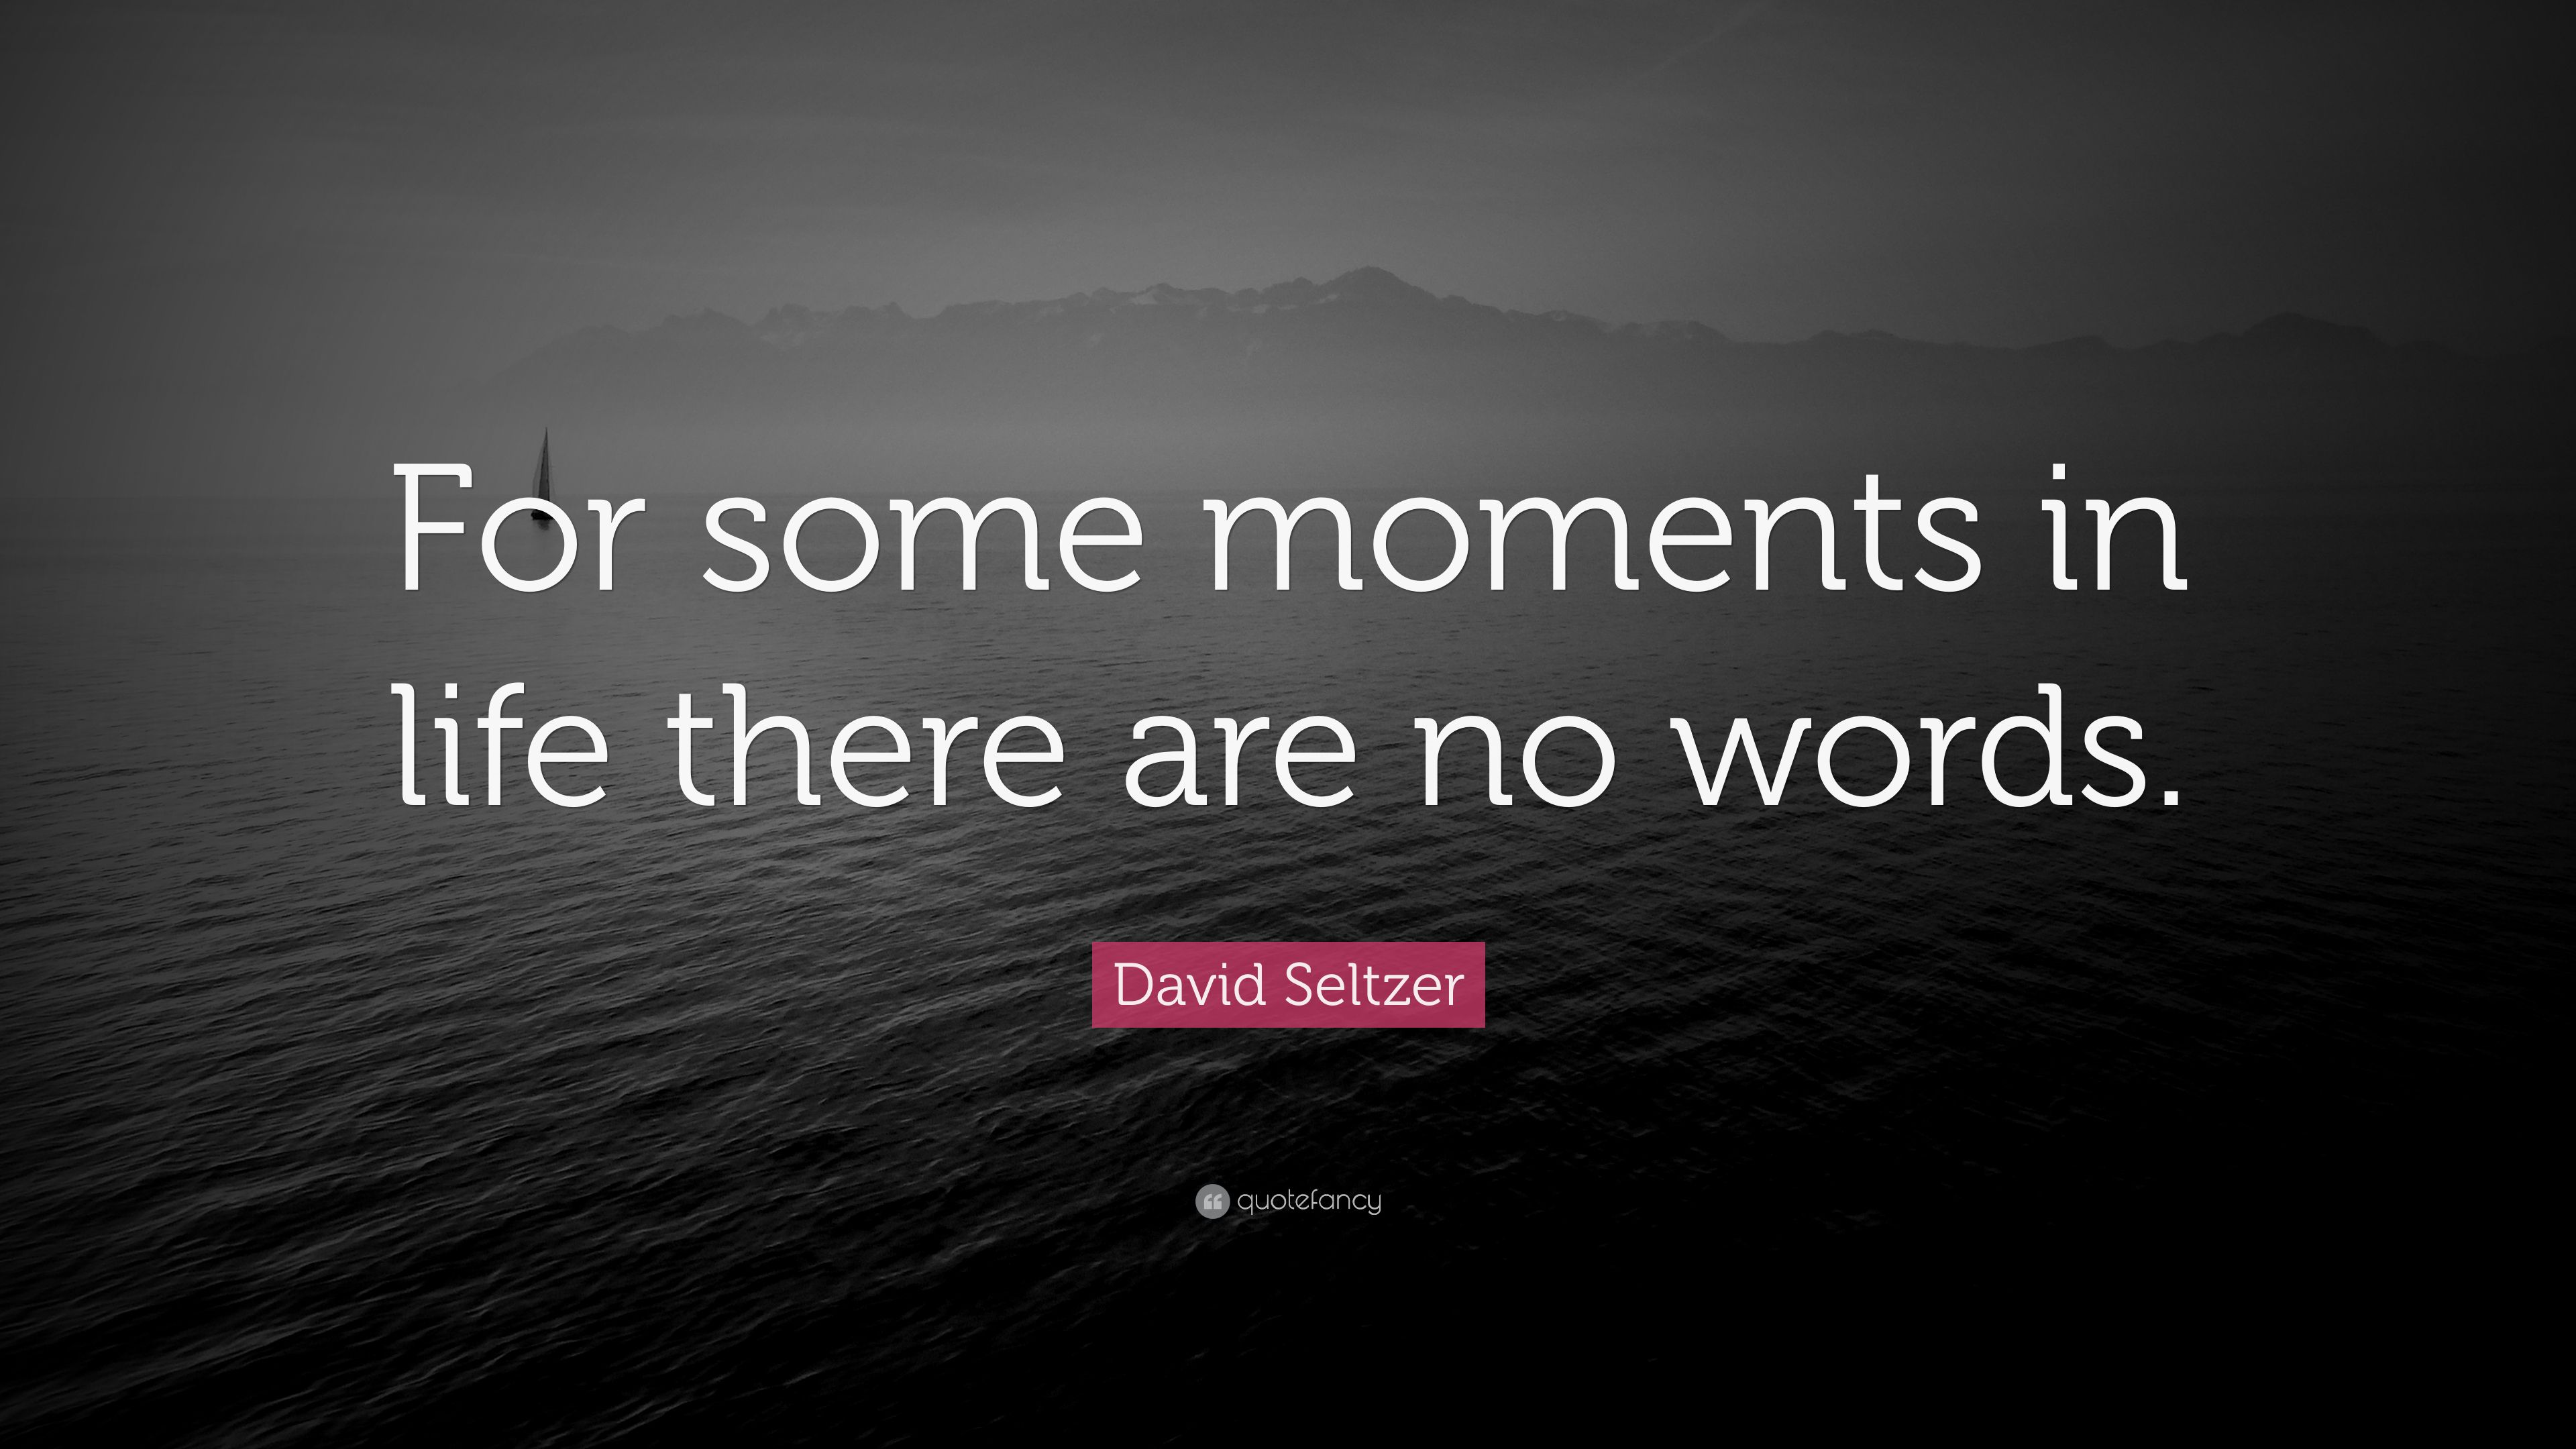 David Seltzer Quote For Some Moments In Life There Are No Words